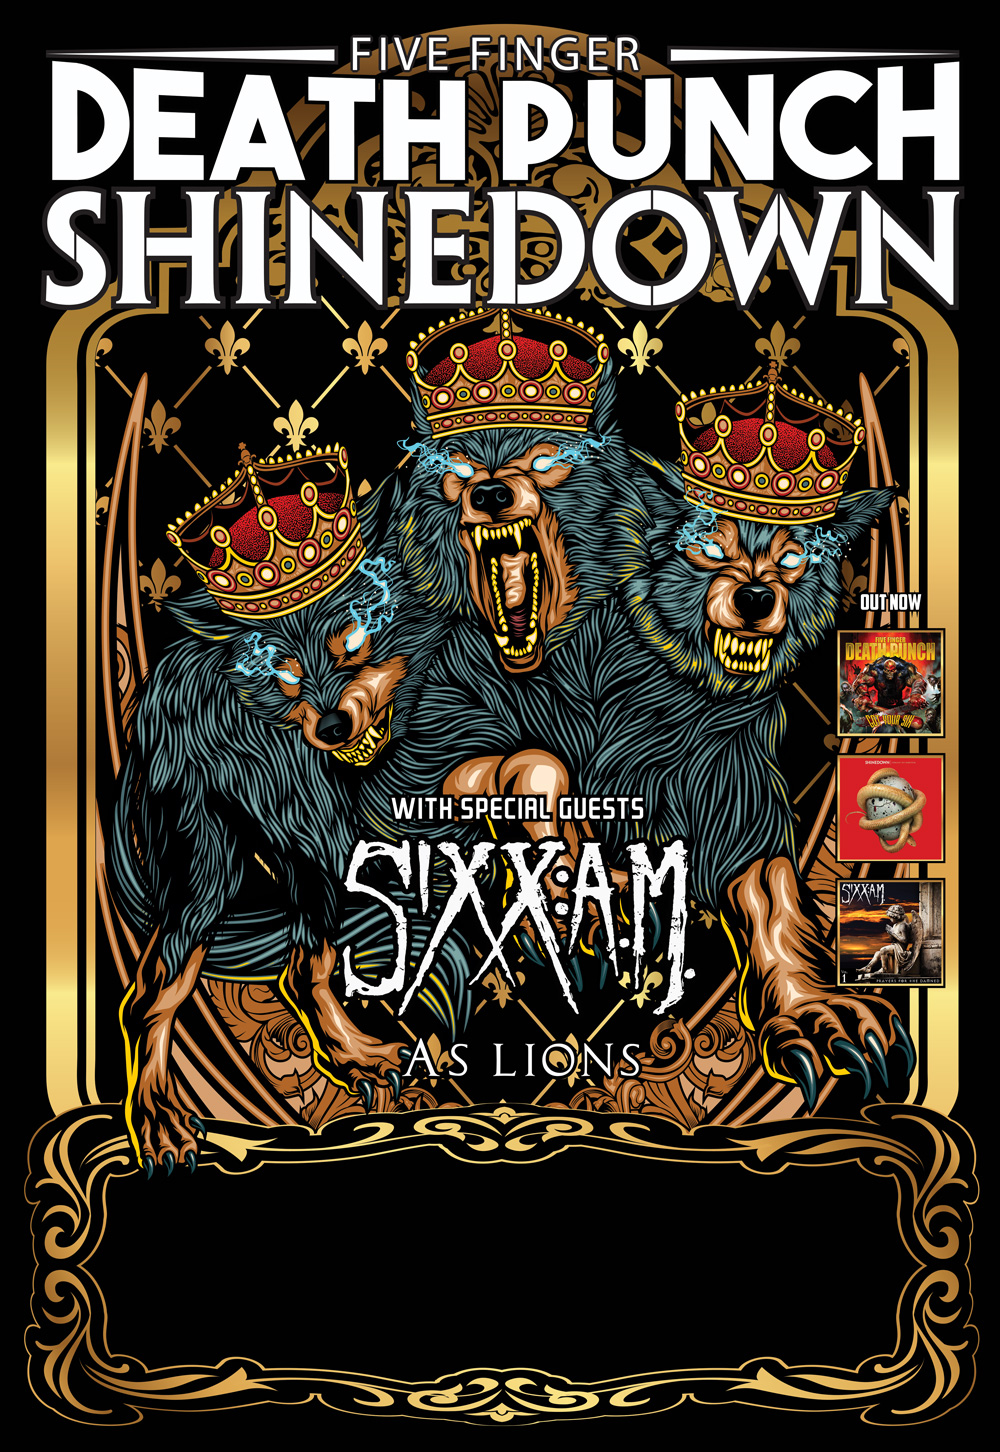 Los Angeles Ca April 26th 2016 Five Finger Punch And Shinedown Are Partnering To Co Headline The Biggest Fall Arena Rock Tour 2016 Produced By